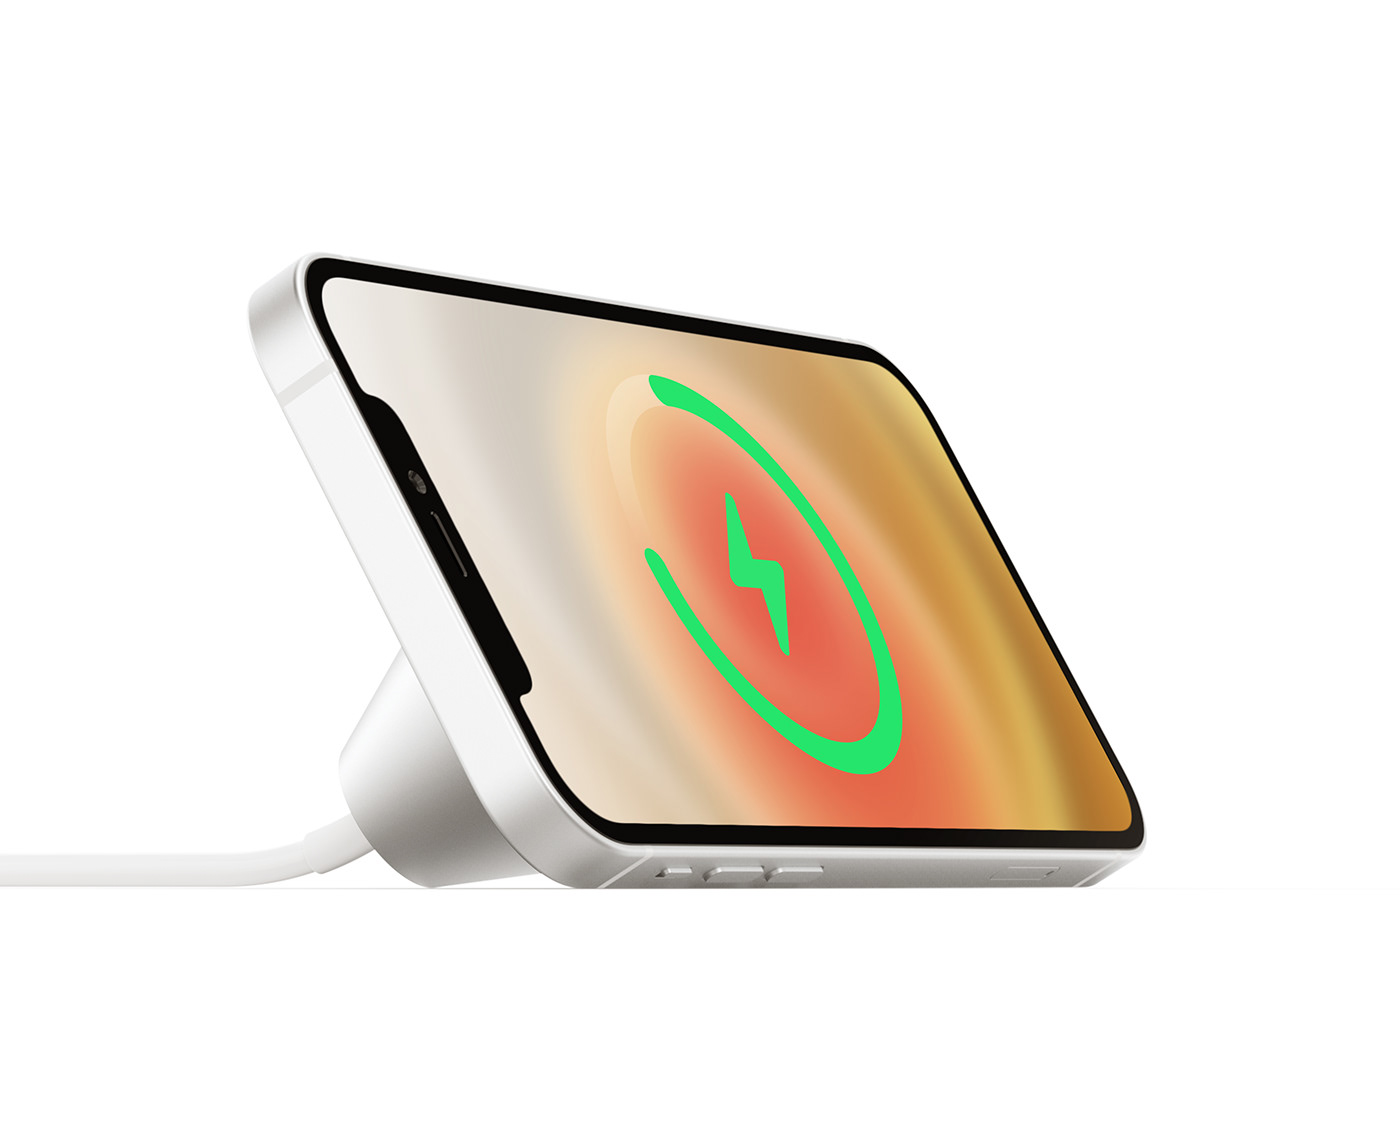 apple industrialdesign iphone iphone12 MagSafe modern productdesign simple Stand steel